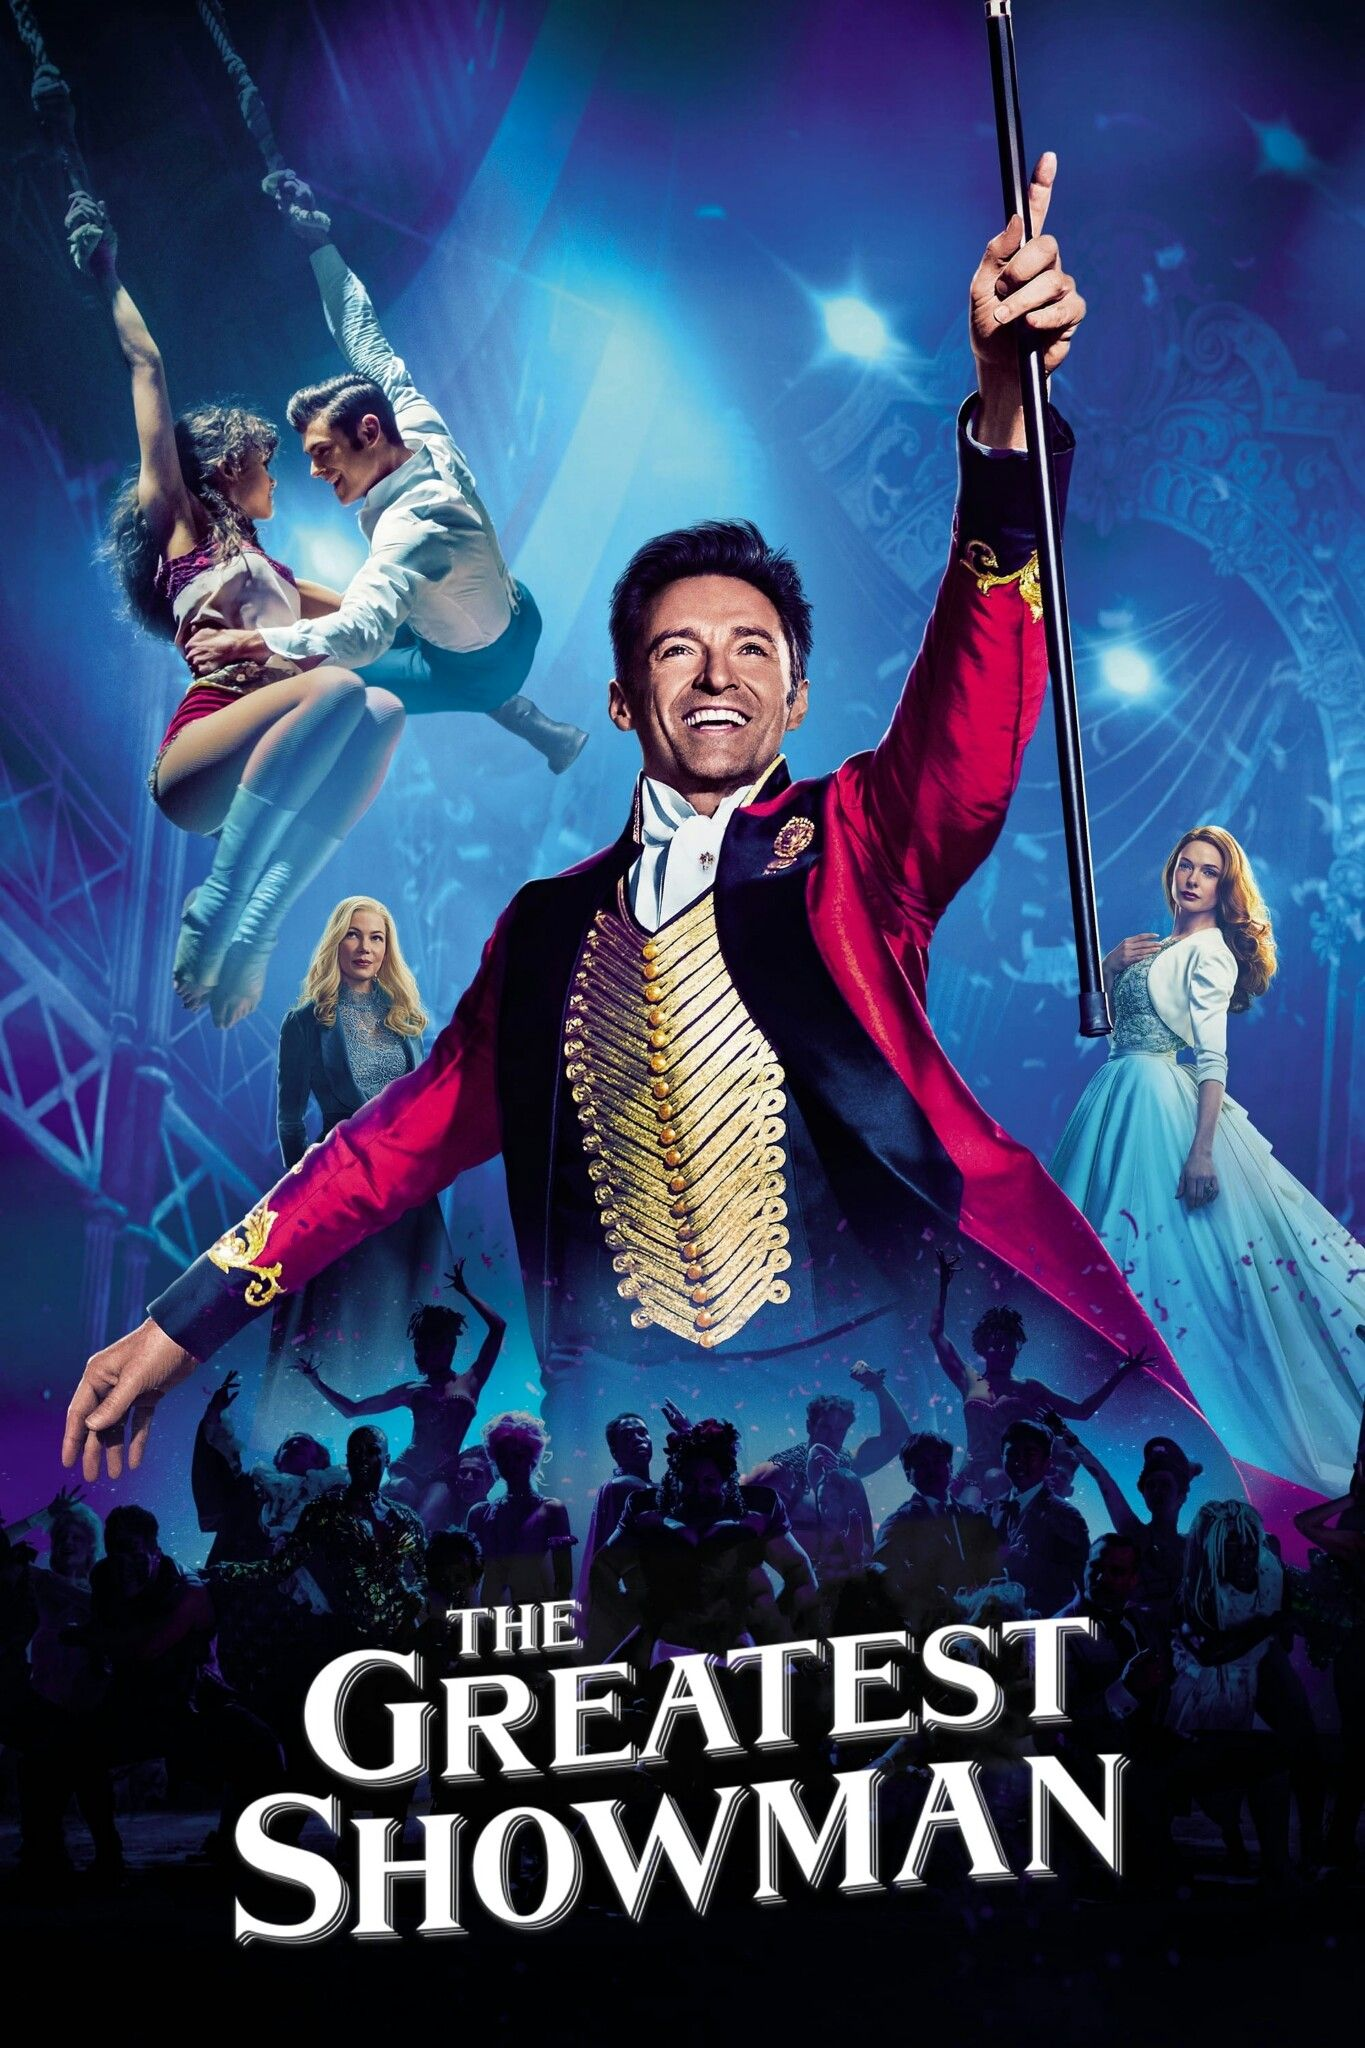 The Greatest Showman Movie Poster Fantastic Movie Posters Scifi